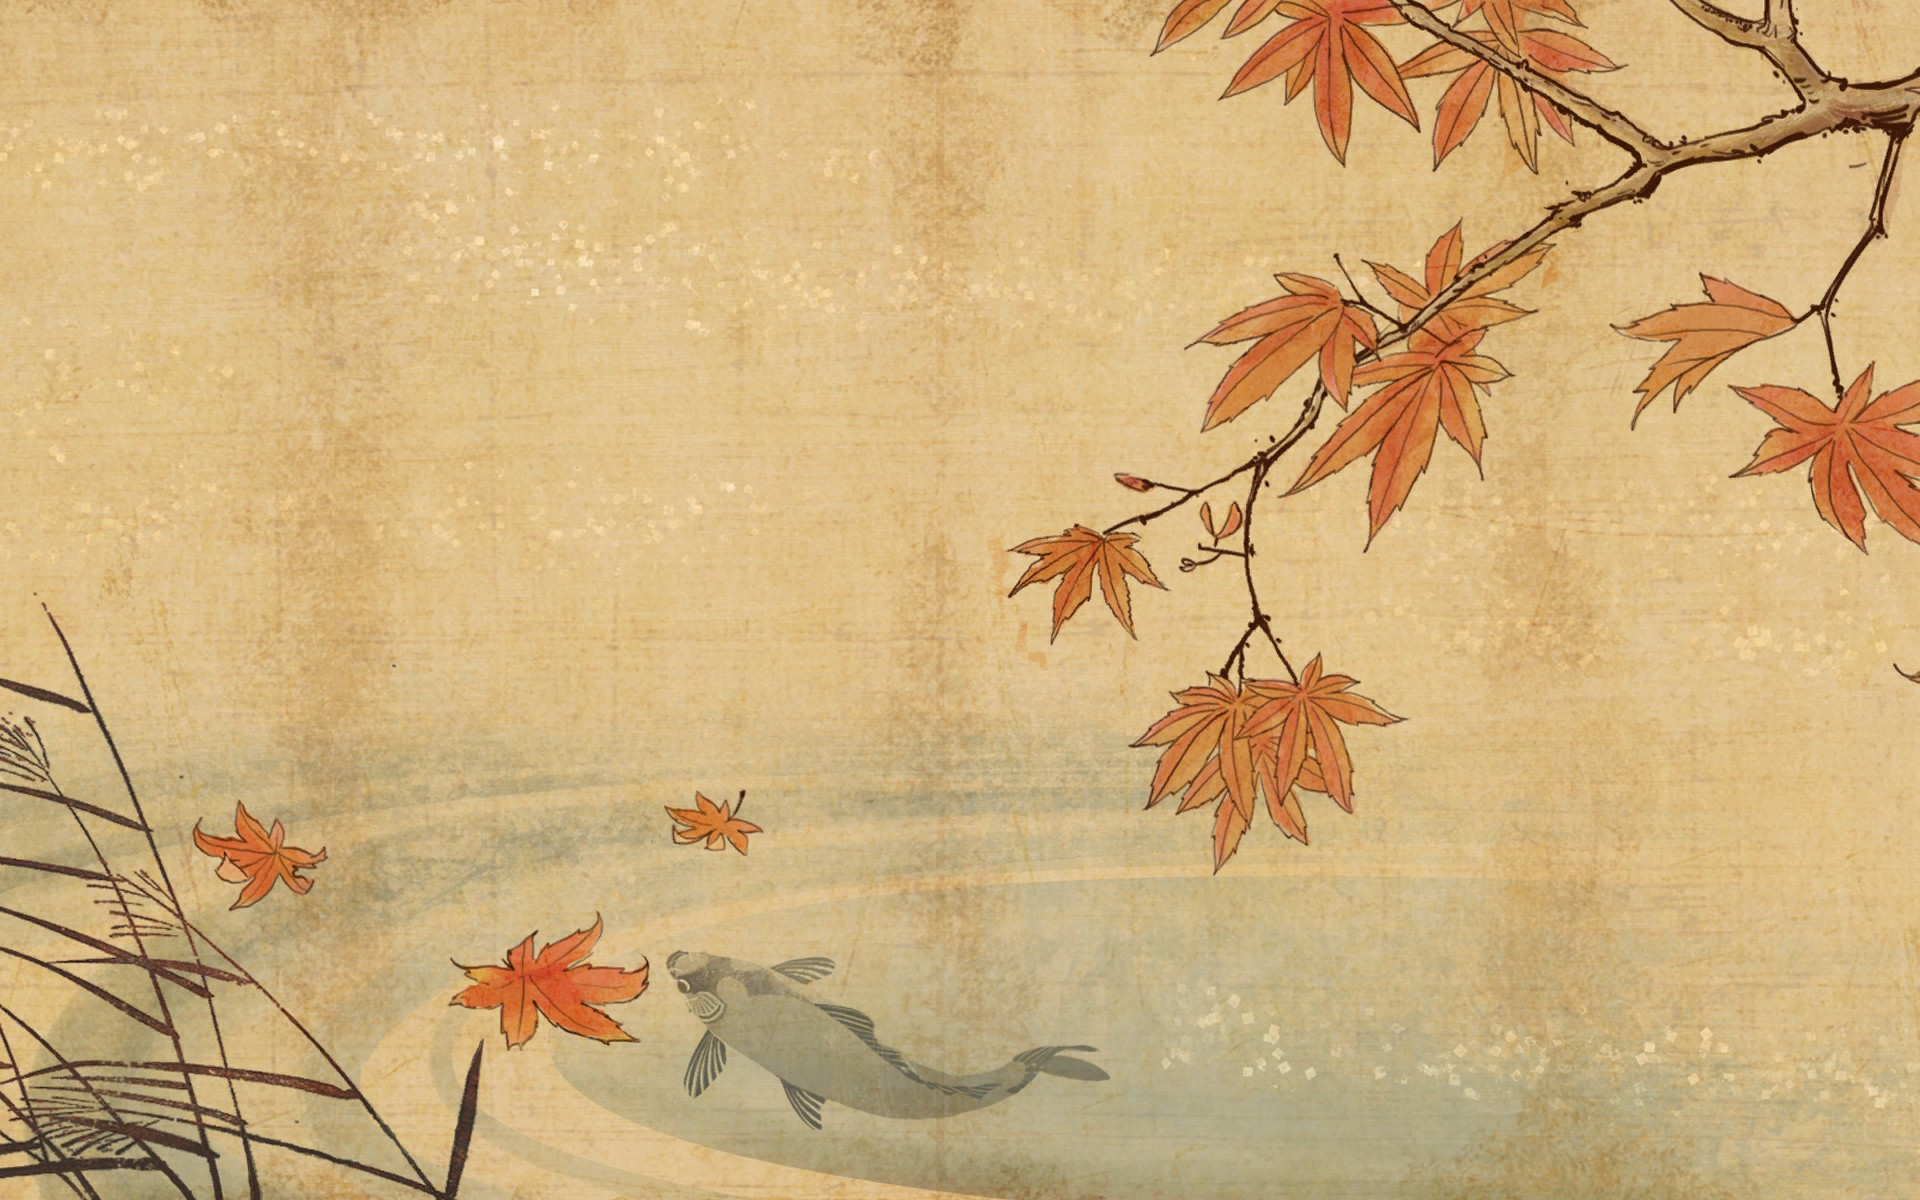 Japanese Art Wallpaper Hd: Japanese Wallpaper Art 1920x1200px